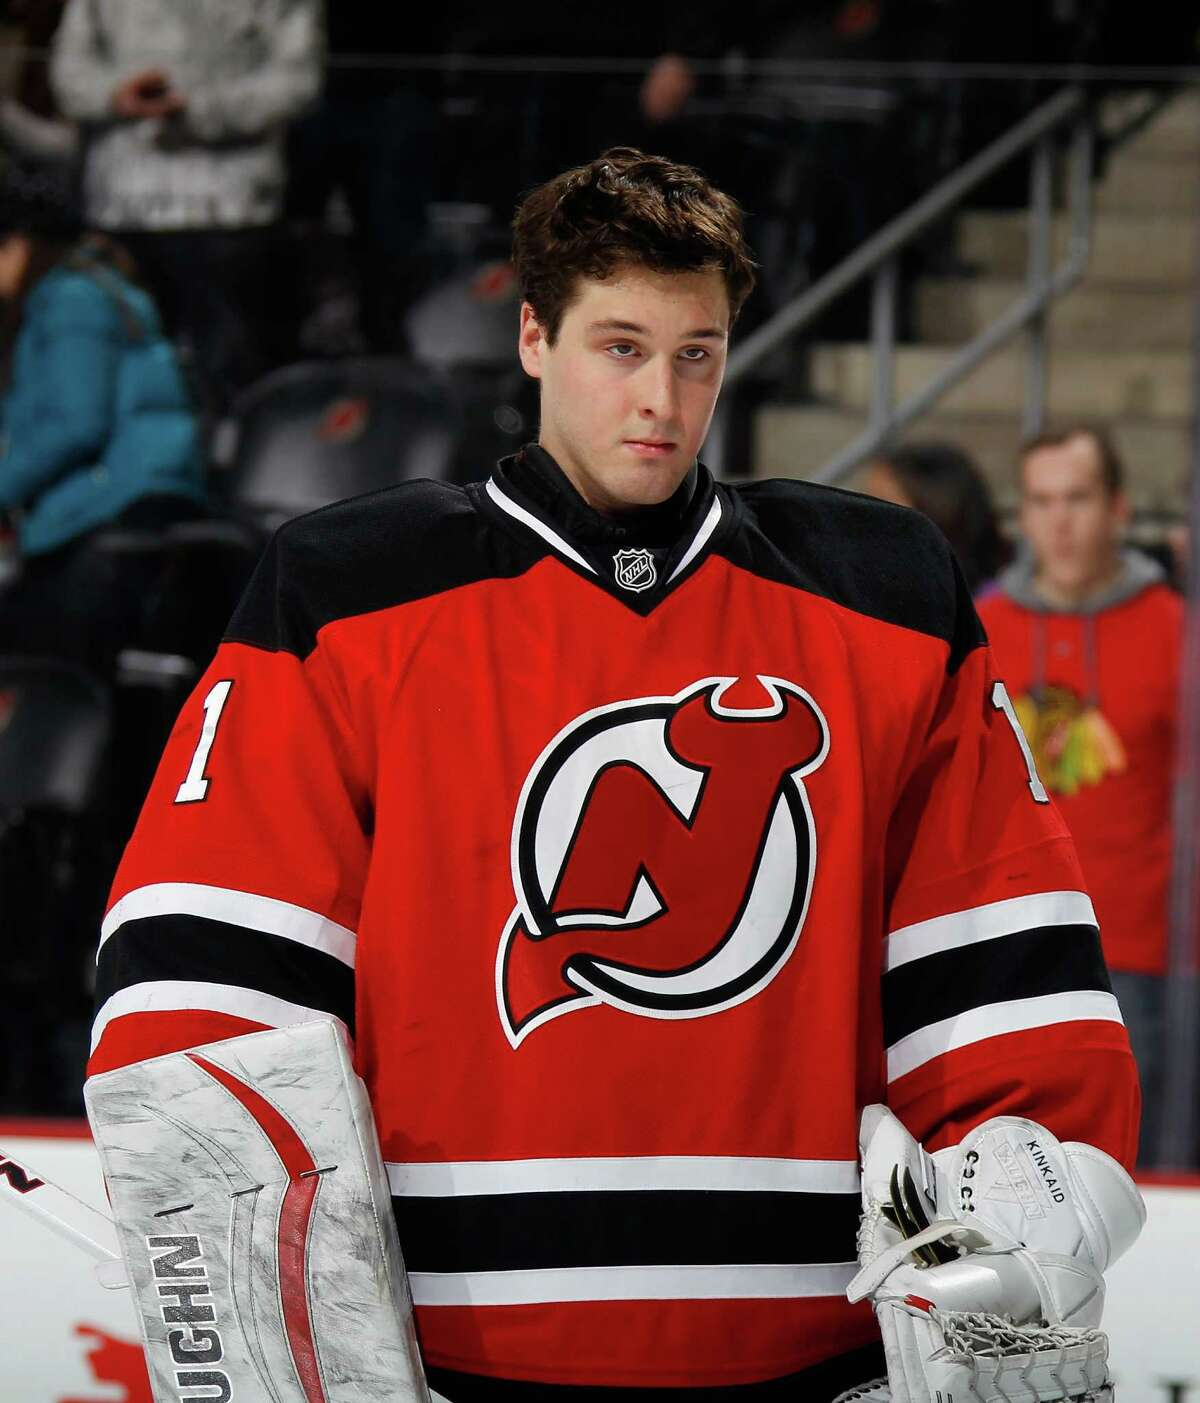 NEWARK, NJ - DECEMBER 09: Keith Kincaid #1 of the New Jersey Devils prepares for his first start against the Chicago Blackhawks at the Prudential Center on December 9, 2014 in Newark, New Jersey. (Photo by Bruce Bennett/Getty Images) ORG XMIT: 507048175